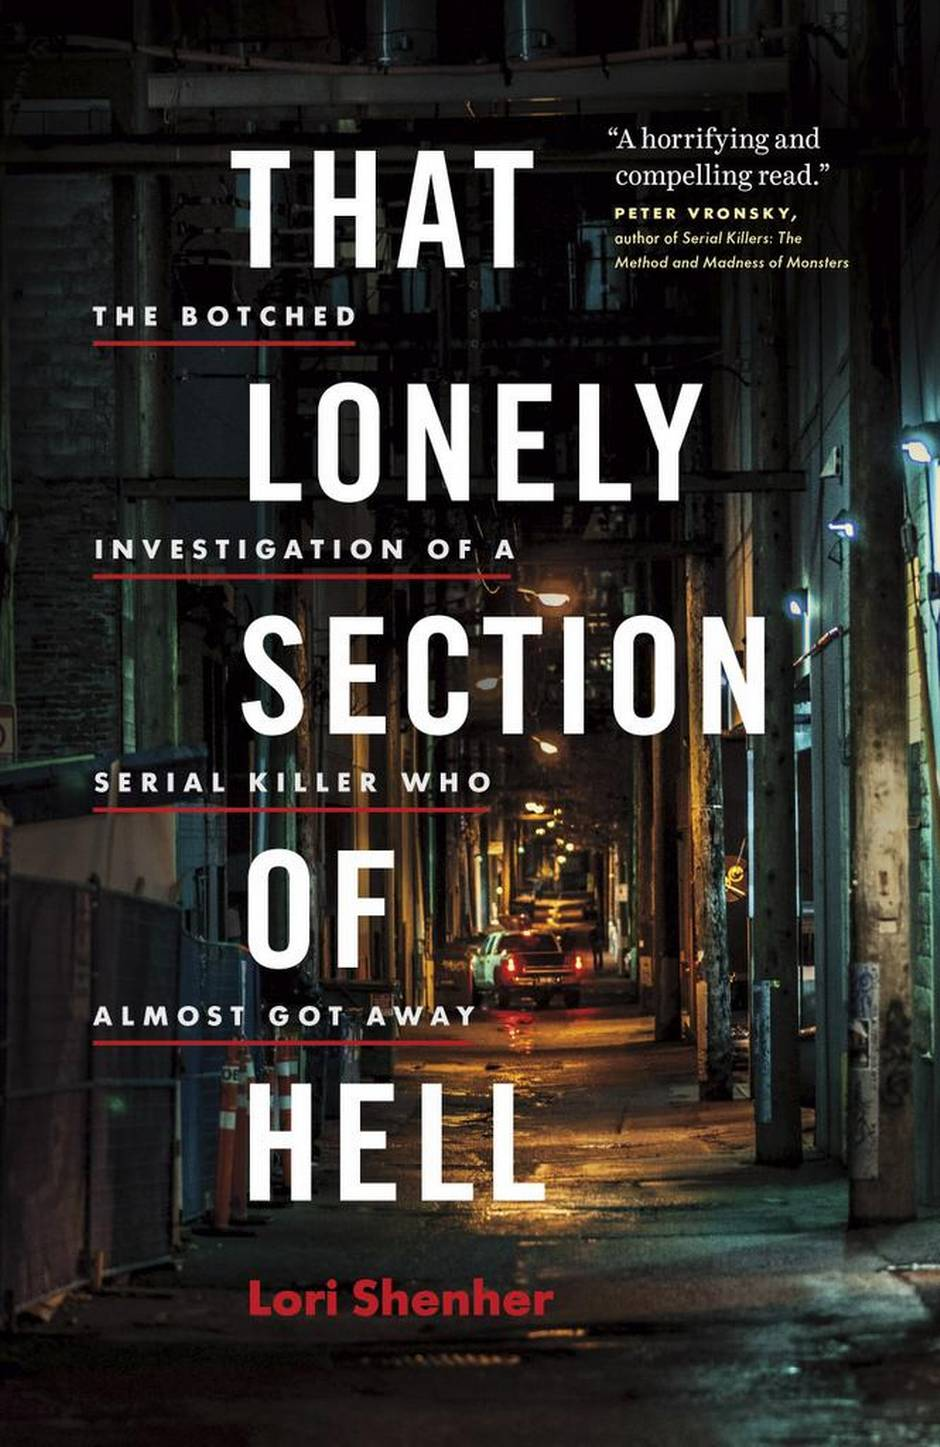 That Lonely Section of Hell: The botched investigation of a